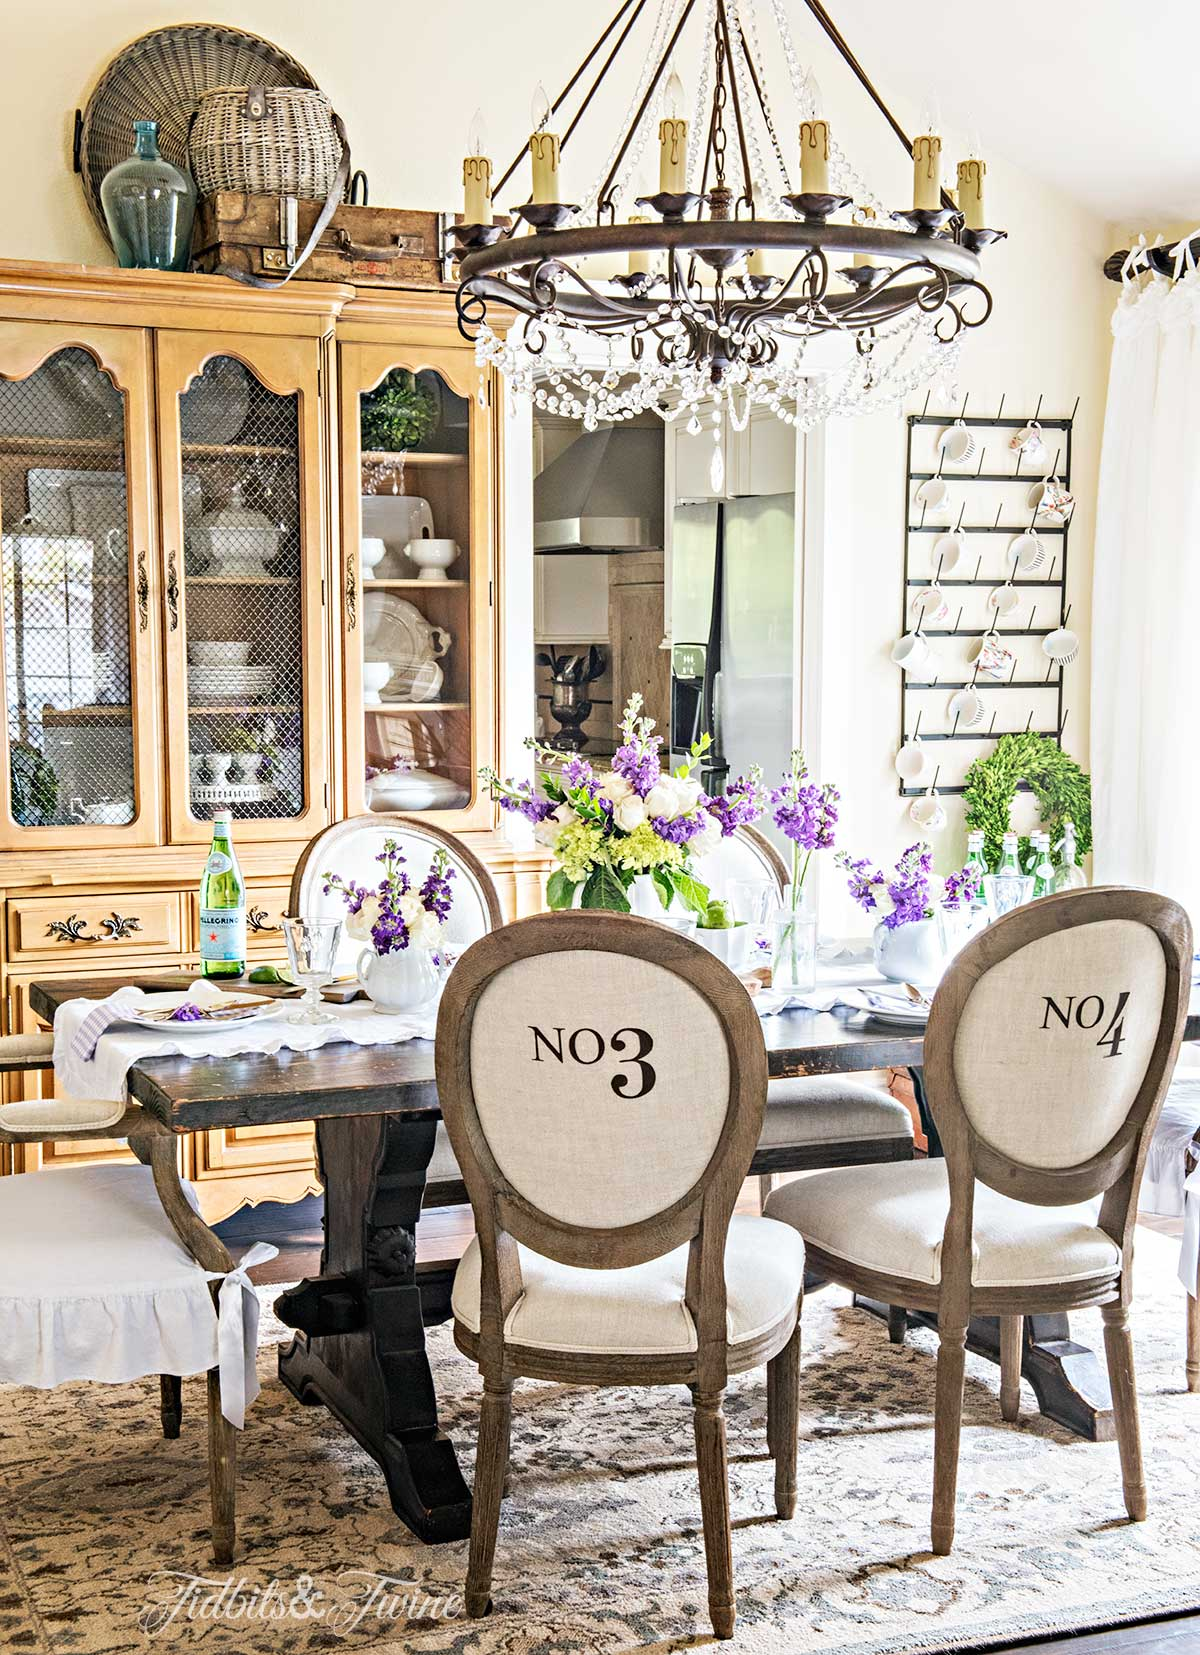 Tidbits&Twine French Dining Room Spring Decor with numbered RH chairs ironstone and crystal